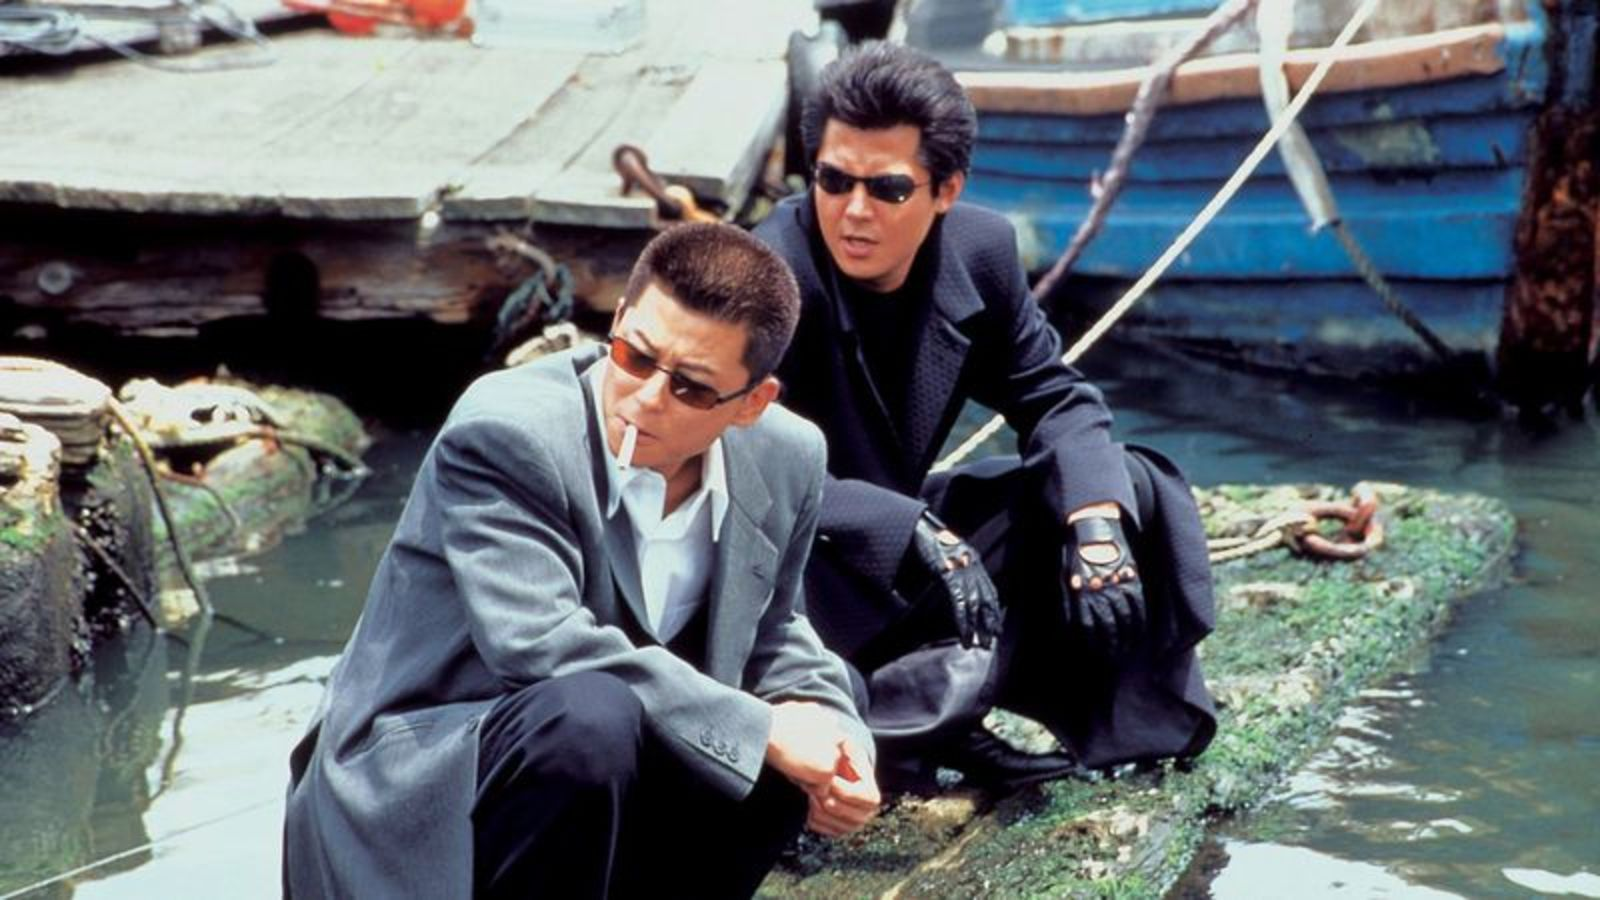 (l to r) Sho Aikawa and Riki Takechi in Dead or Alive (1999)